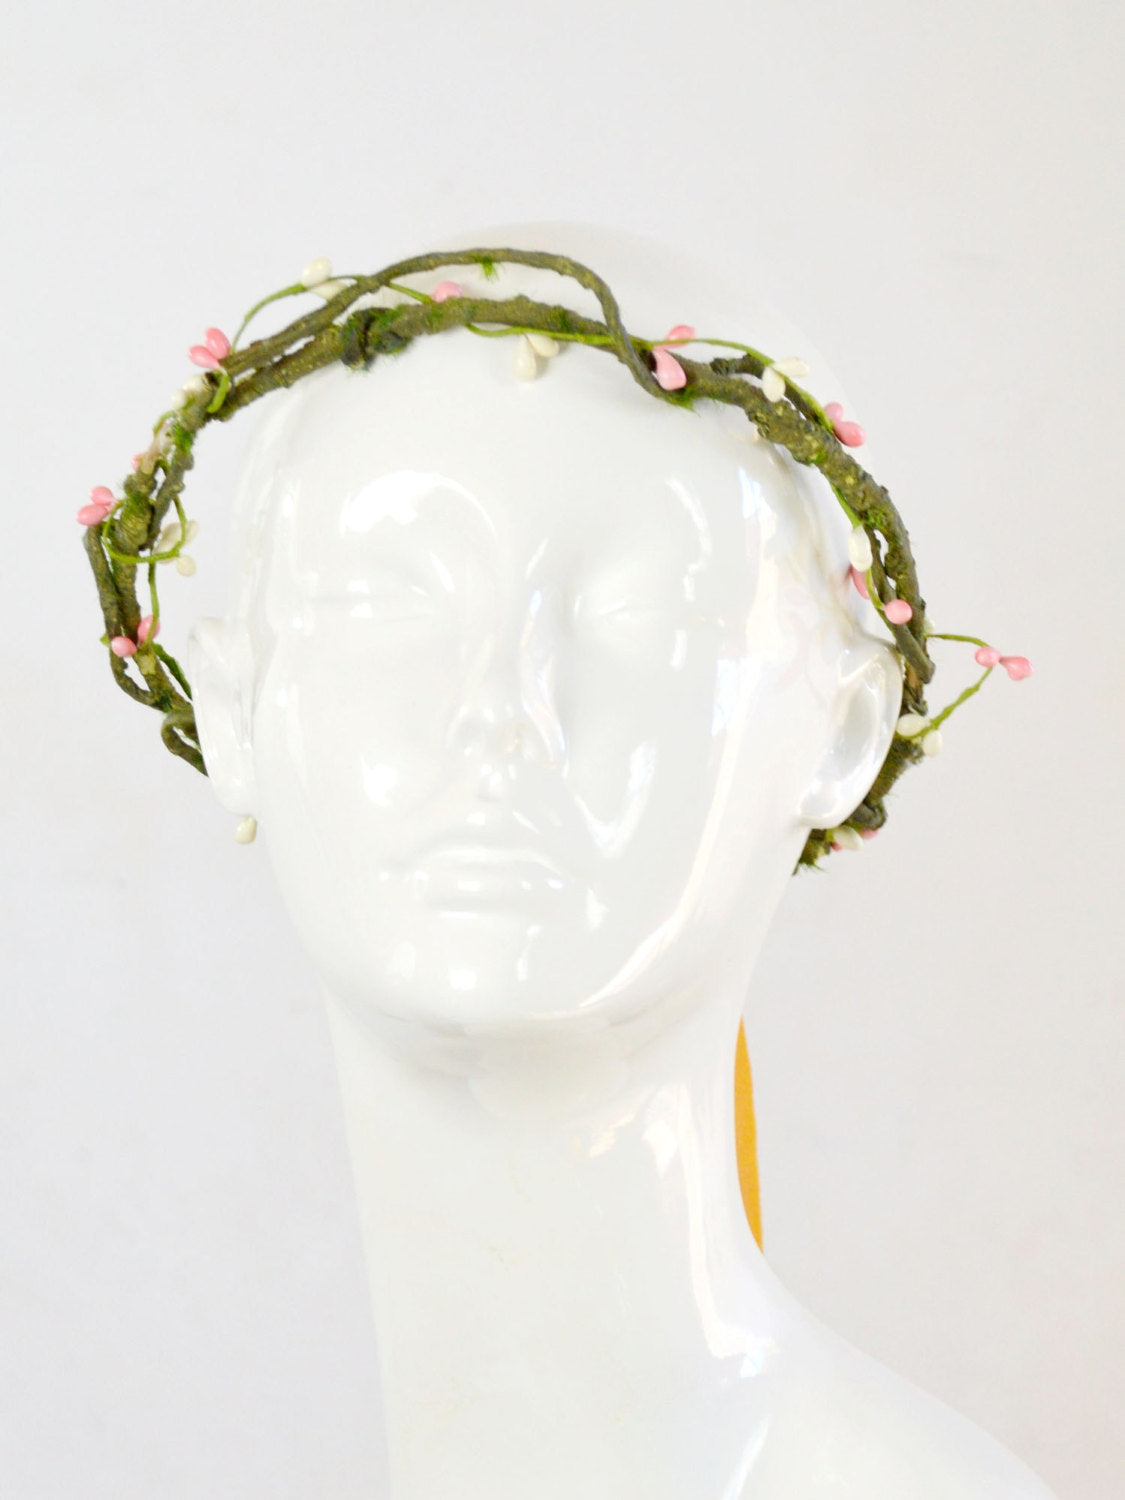 Mannequin wearing a crown of green branches and vines, pink flowers, yellow flowers, silk tie.